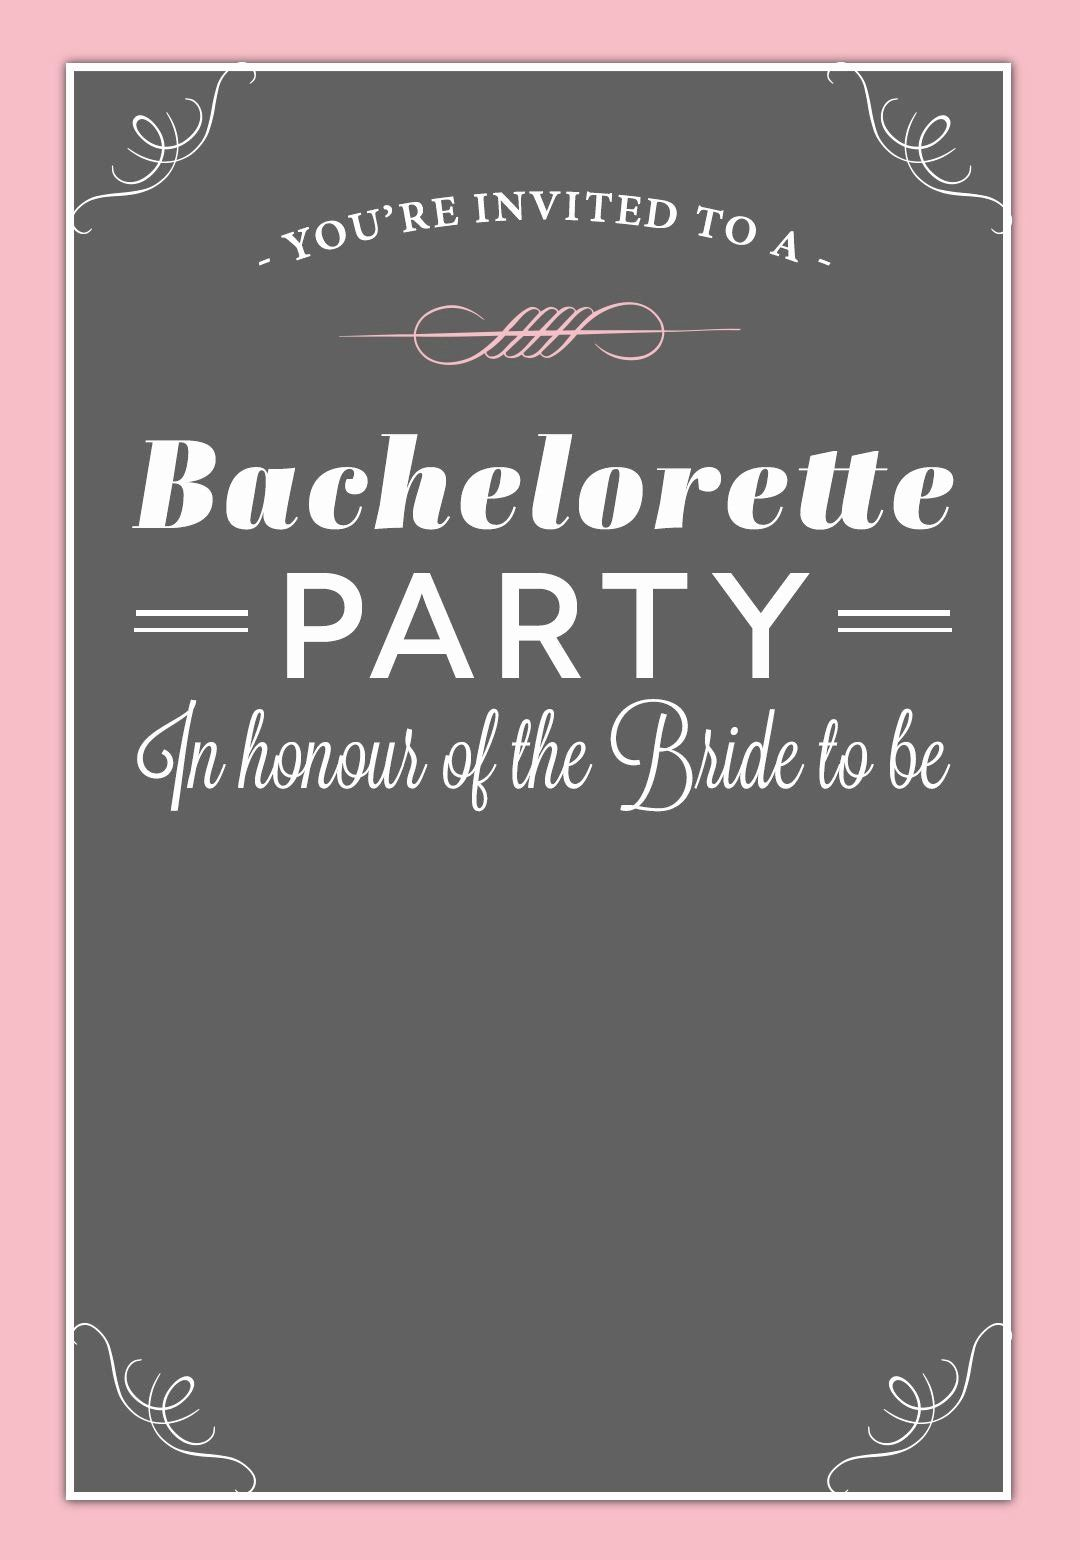 Bachelorette Party Invitations Template Free Fresh Bachelorette Par Free Bachelorette Party Invitations Bachelorette Party Invitations Bachelorette Invitations Bachelorette party invitations template free